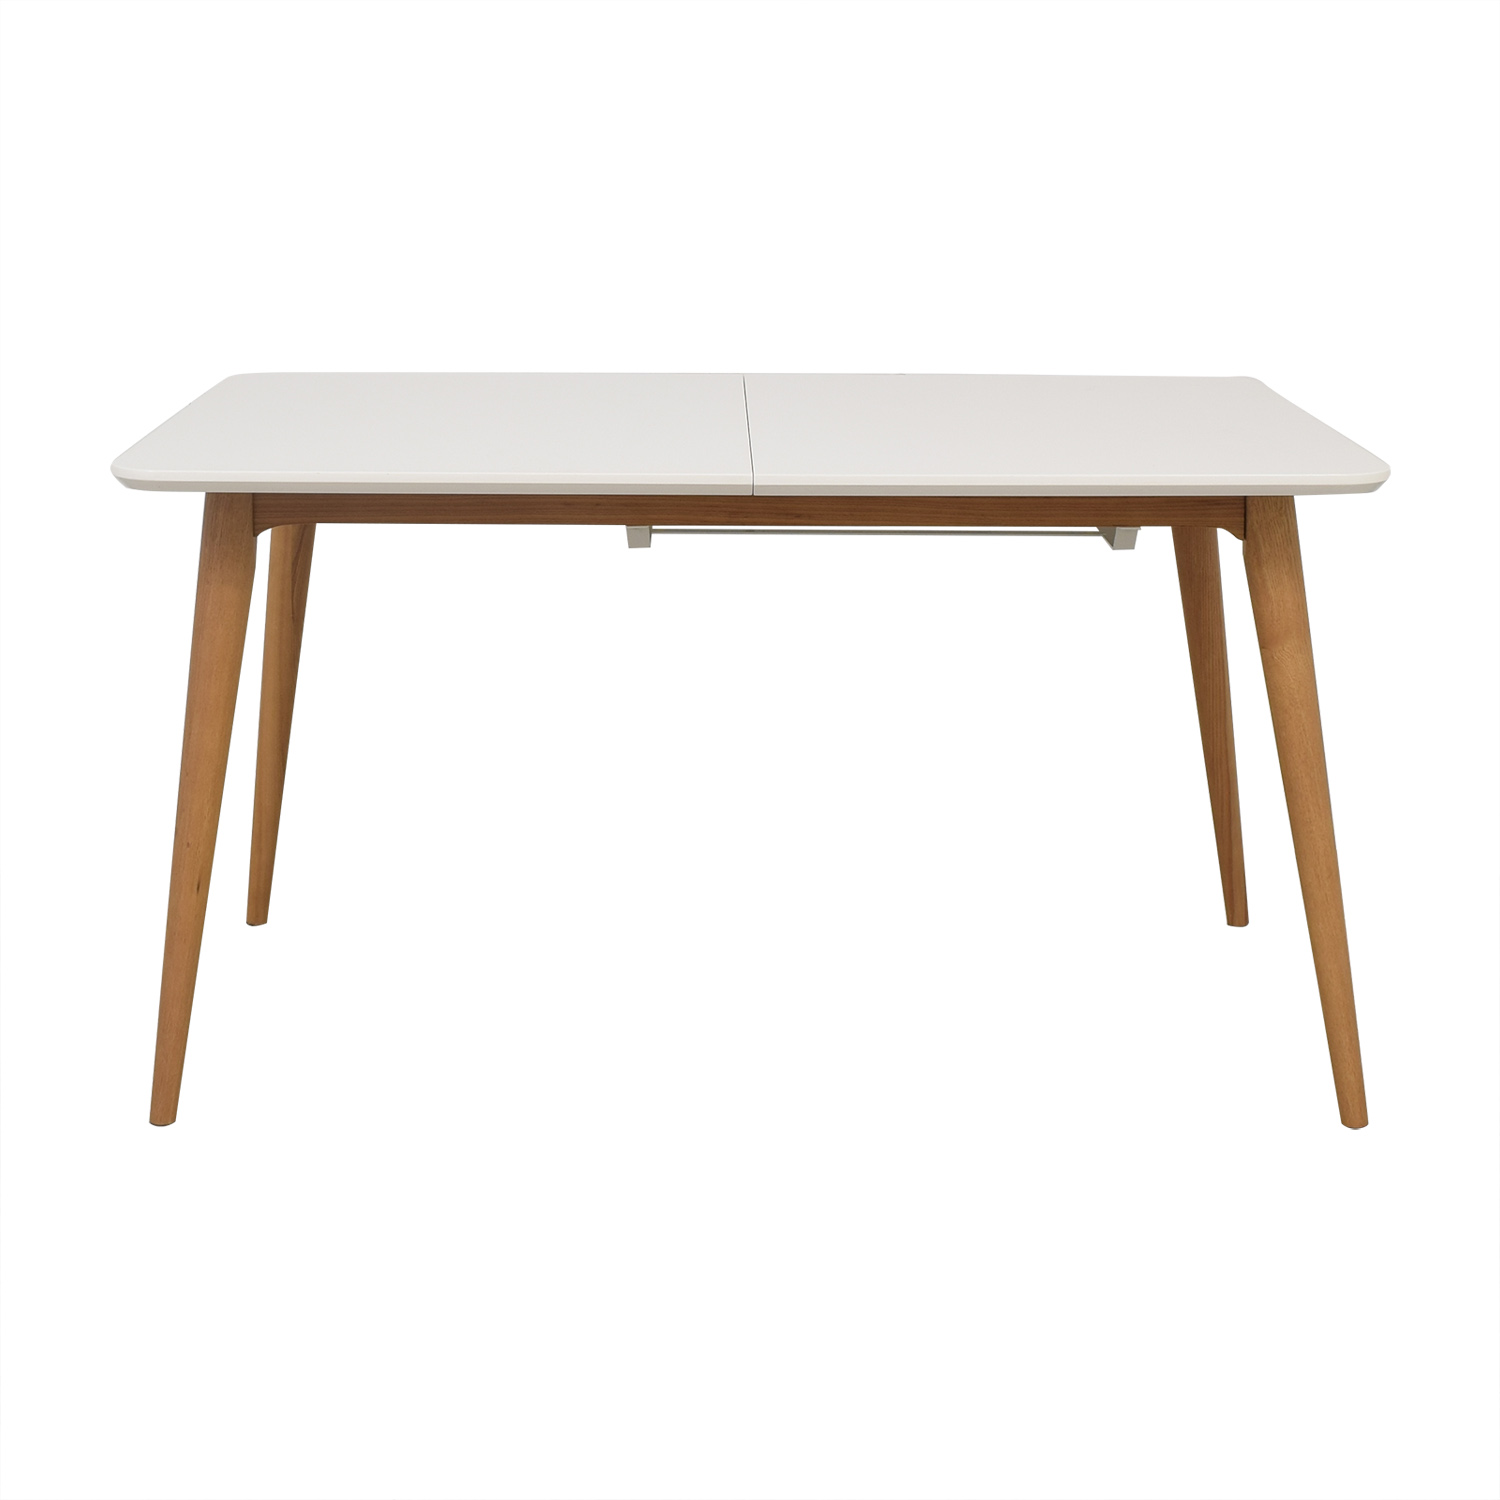 Rove Concepts Rove Concepts Marcus Dining Table